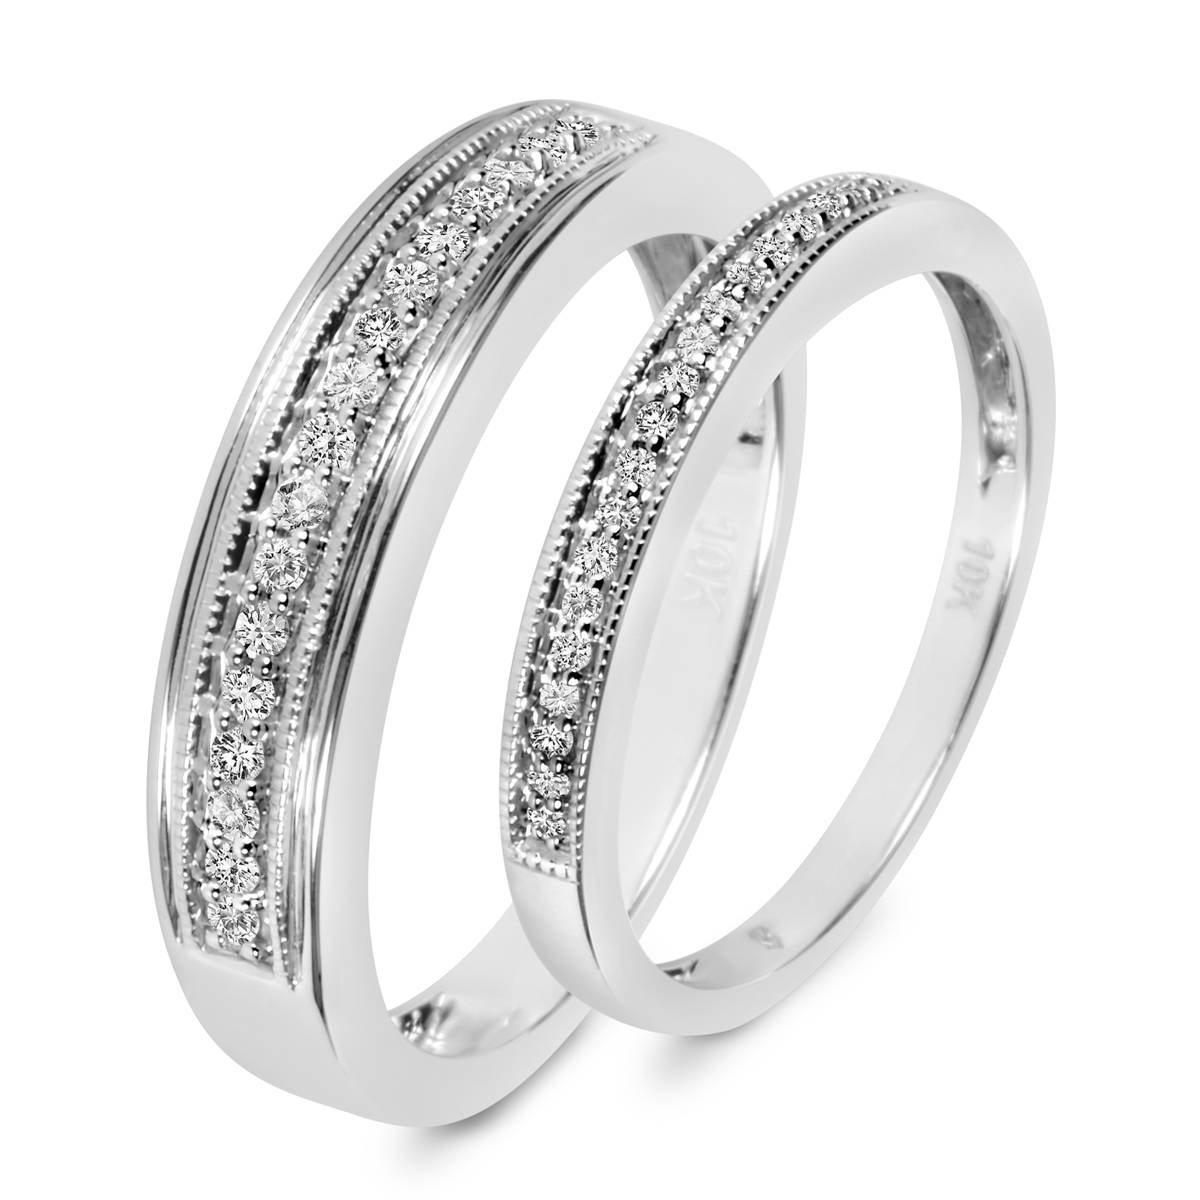 43 White Gold Wedding Band Sets His Hers, His And Hers Wedding Pertaining To Wedding Bands Sets His And Hers (View 7 of 15)